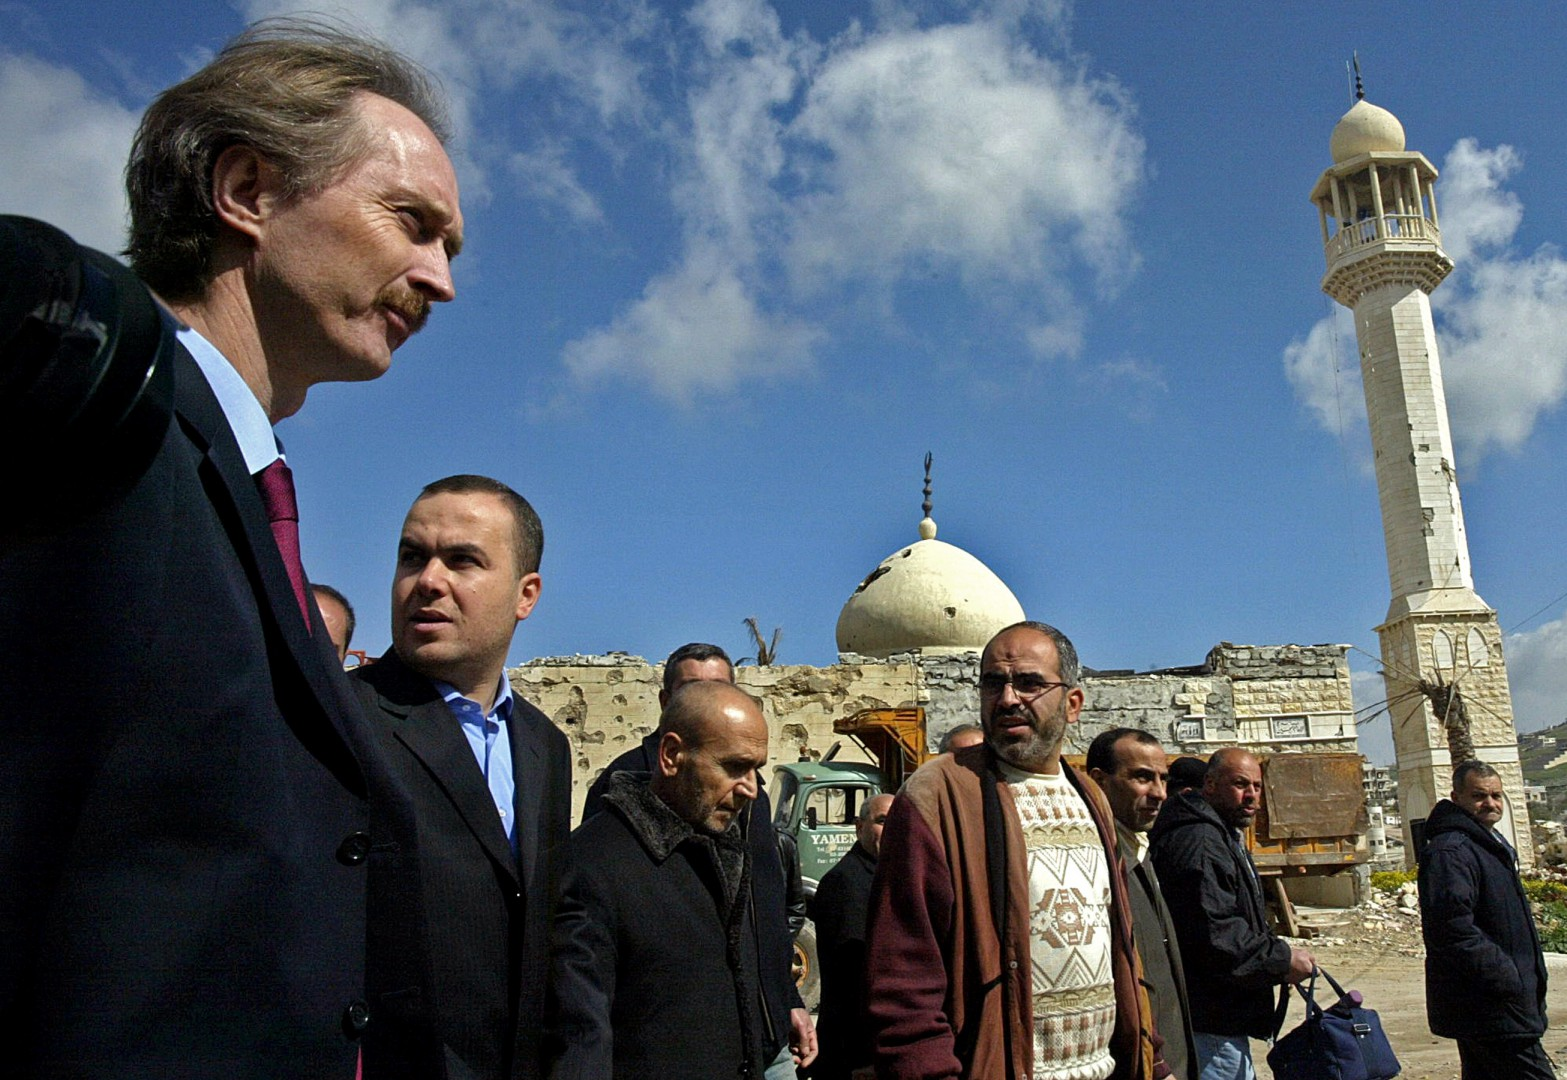 (FILES) In this file photo taken on March 02, 2007, Geir Pedersen (L), then UN special coordinator for Lebanon, walks alongside Hezbollah deputy Hassan Fadlallah (2nd L) and other officials during their tour in the devastated town of Bint Jbeil in south Lebanon. - United Nations chief Antonio Guterres has informed the Security Council that he wishes to appoint the Norwegian diplomat Geir Pedersen as the next special envoy to Syria, diplomatic sources told AFP on October 31, 2018. Pedersen is currently Norway's ambassador to China and has previously served as its envoy to the UN. (Photo by MAHMOUD ZAYYAT / AFP)